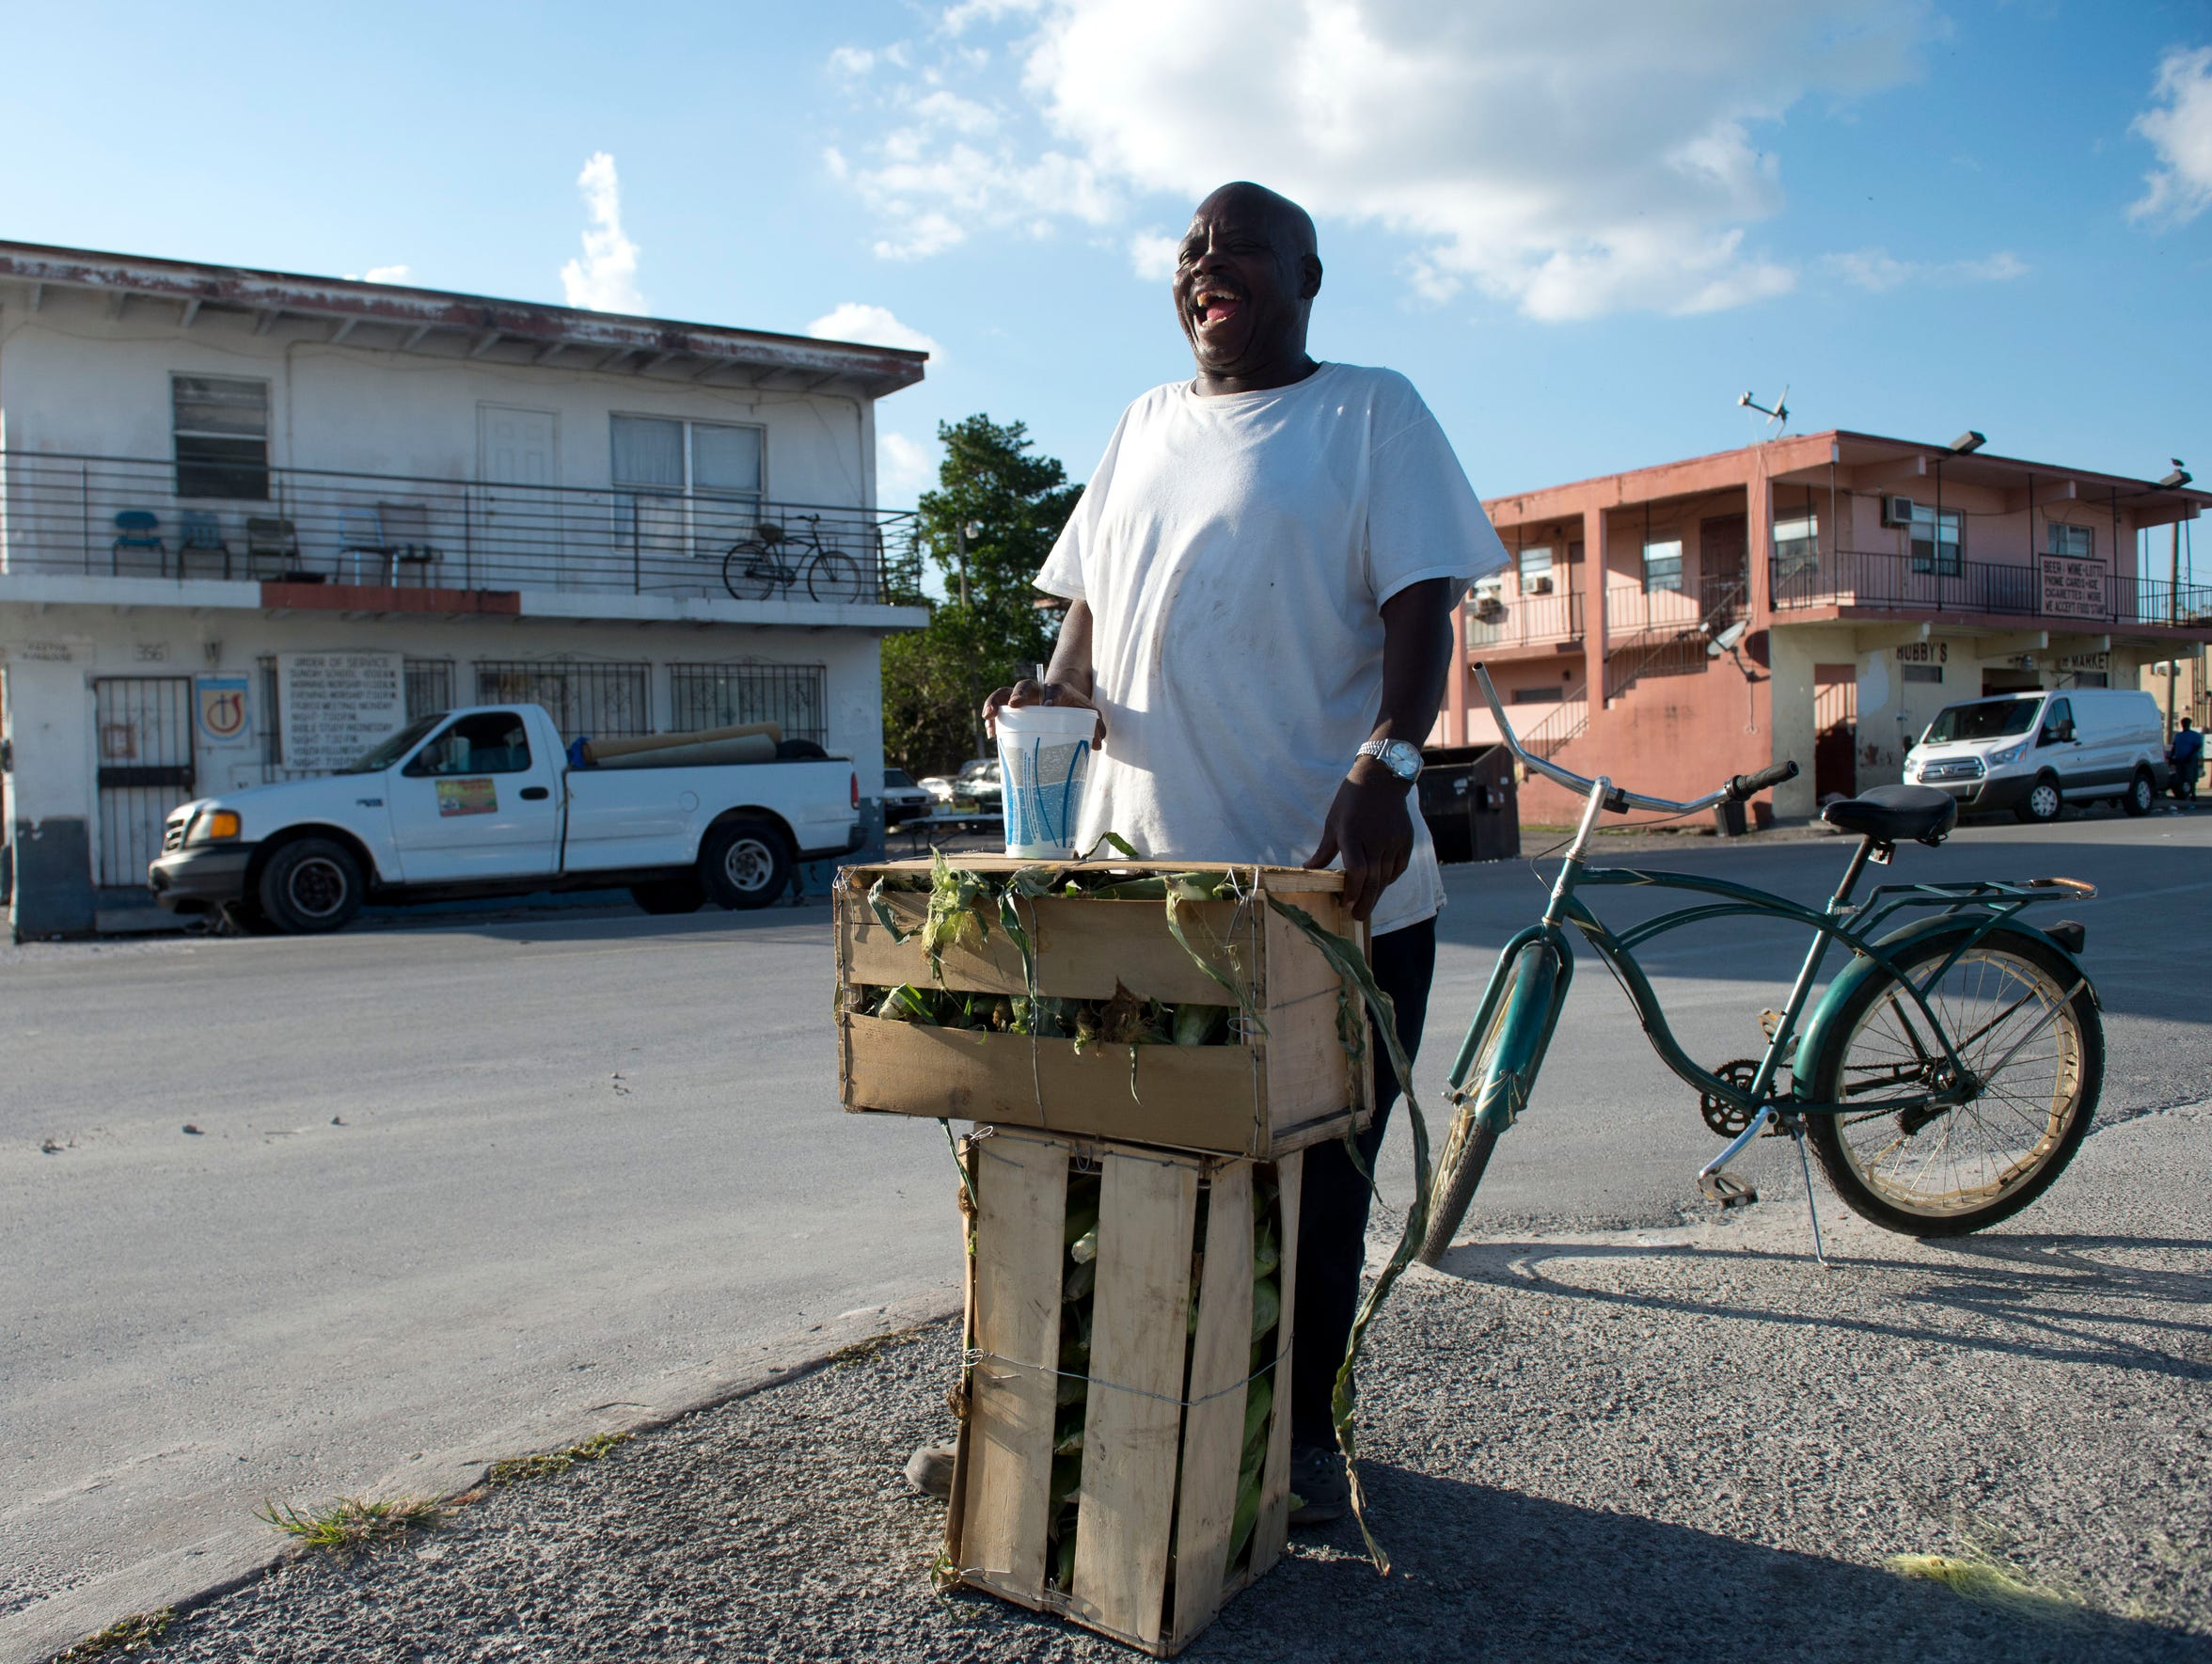 Tony Inman, of Belle Glade, sells sweet corn on a street